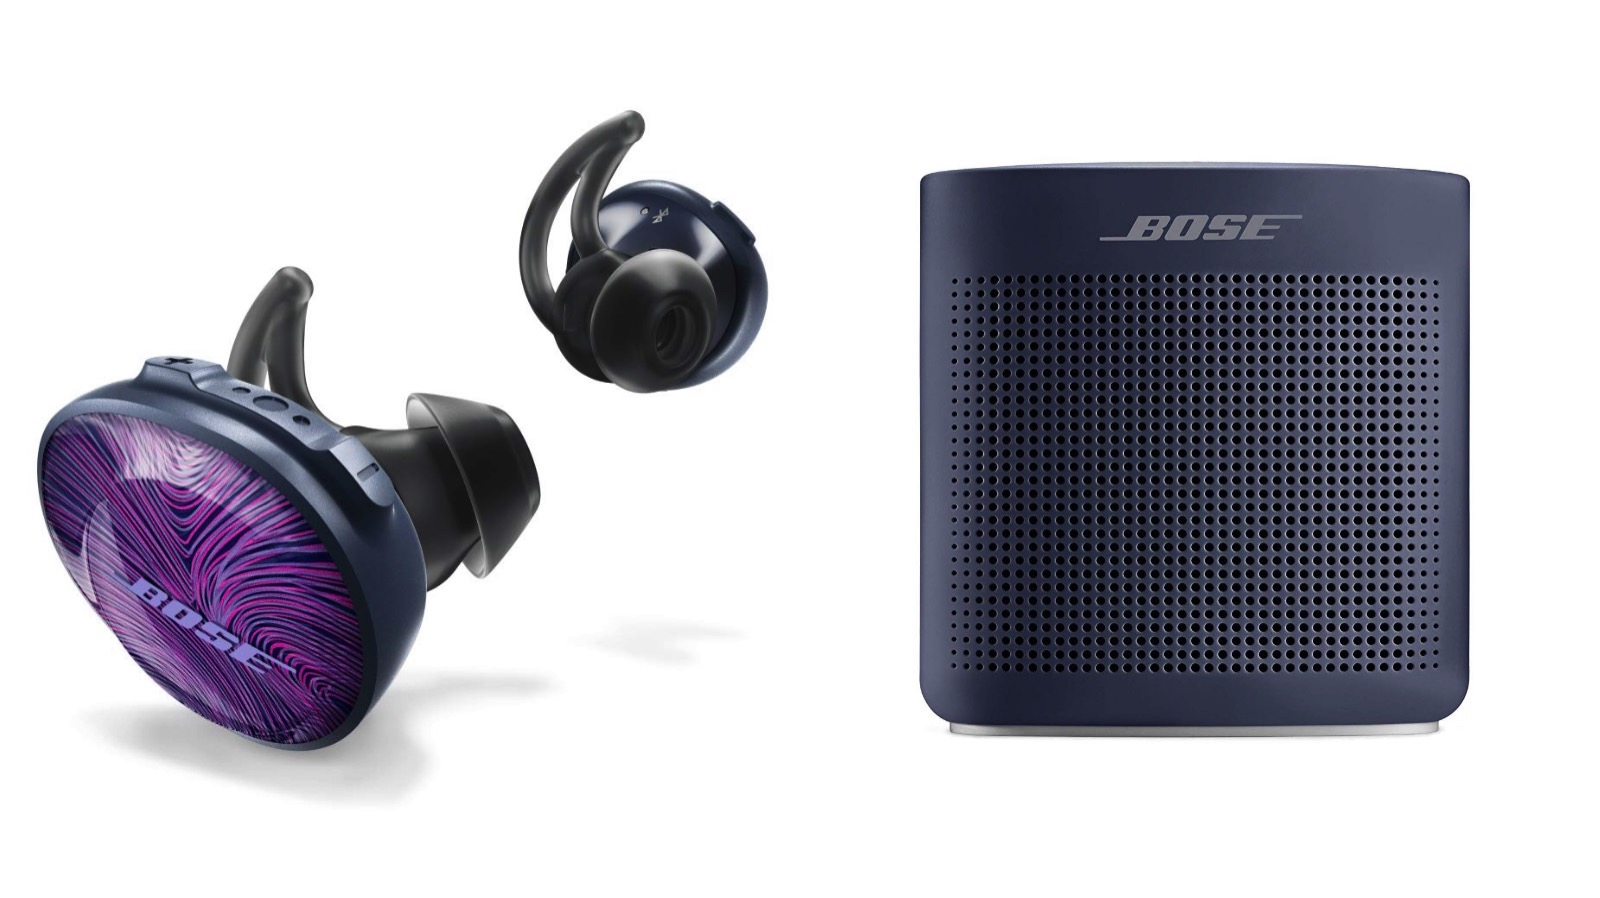 TimeSale Bose Items